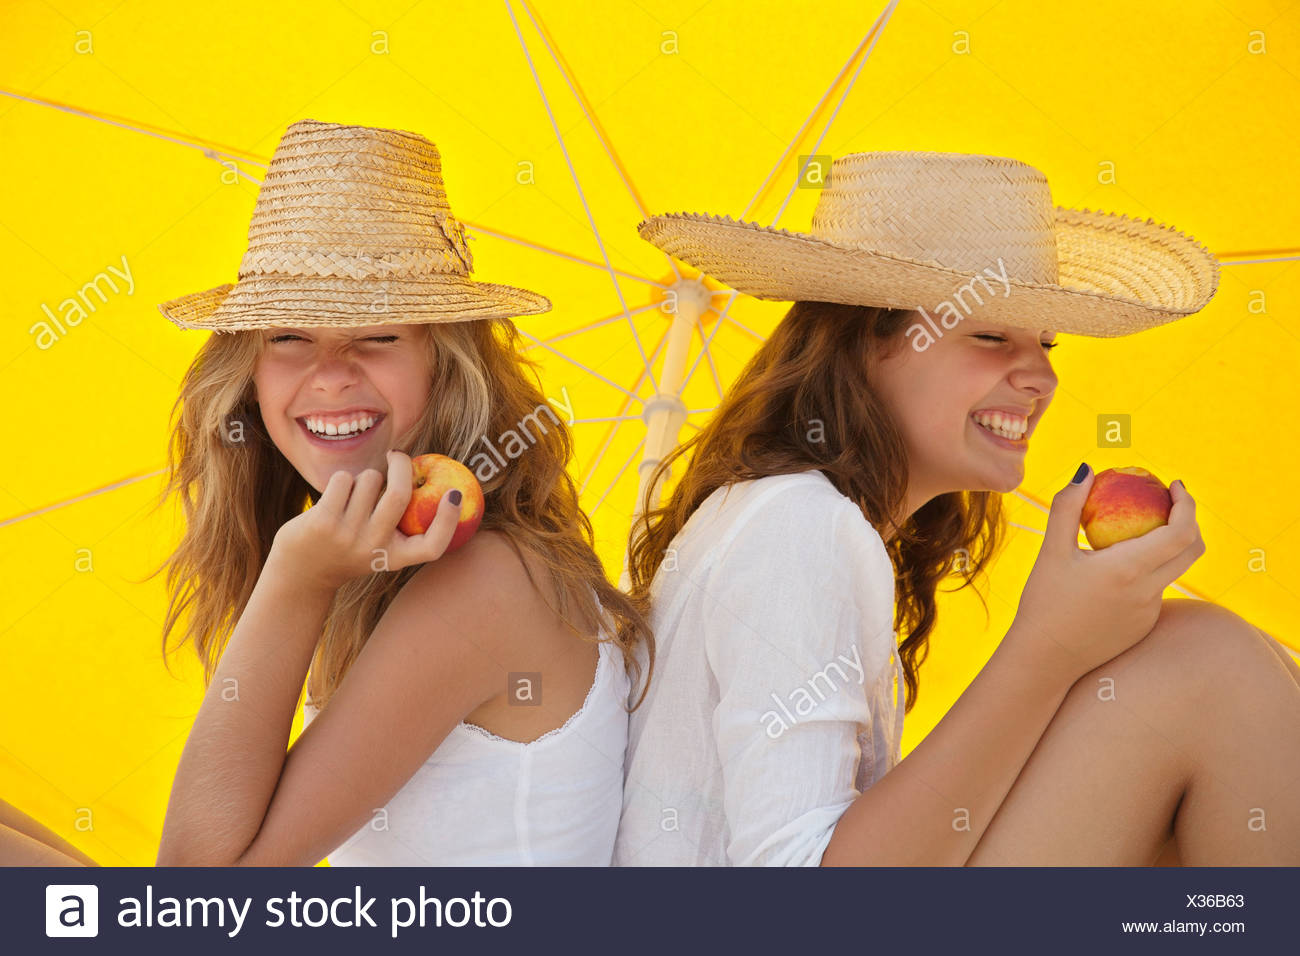 Pretty women eating fruit in the shade - Stock Image